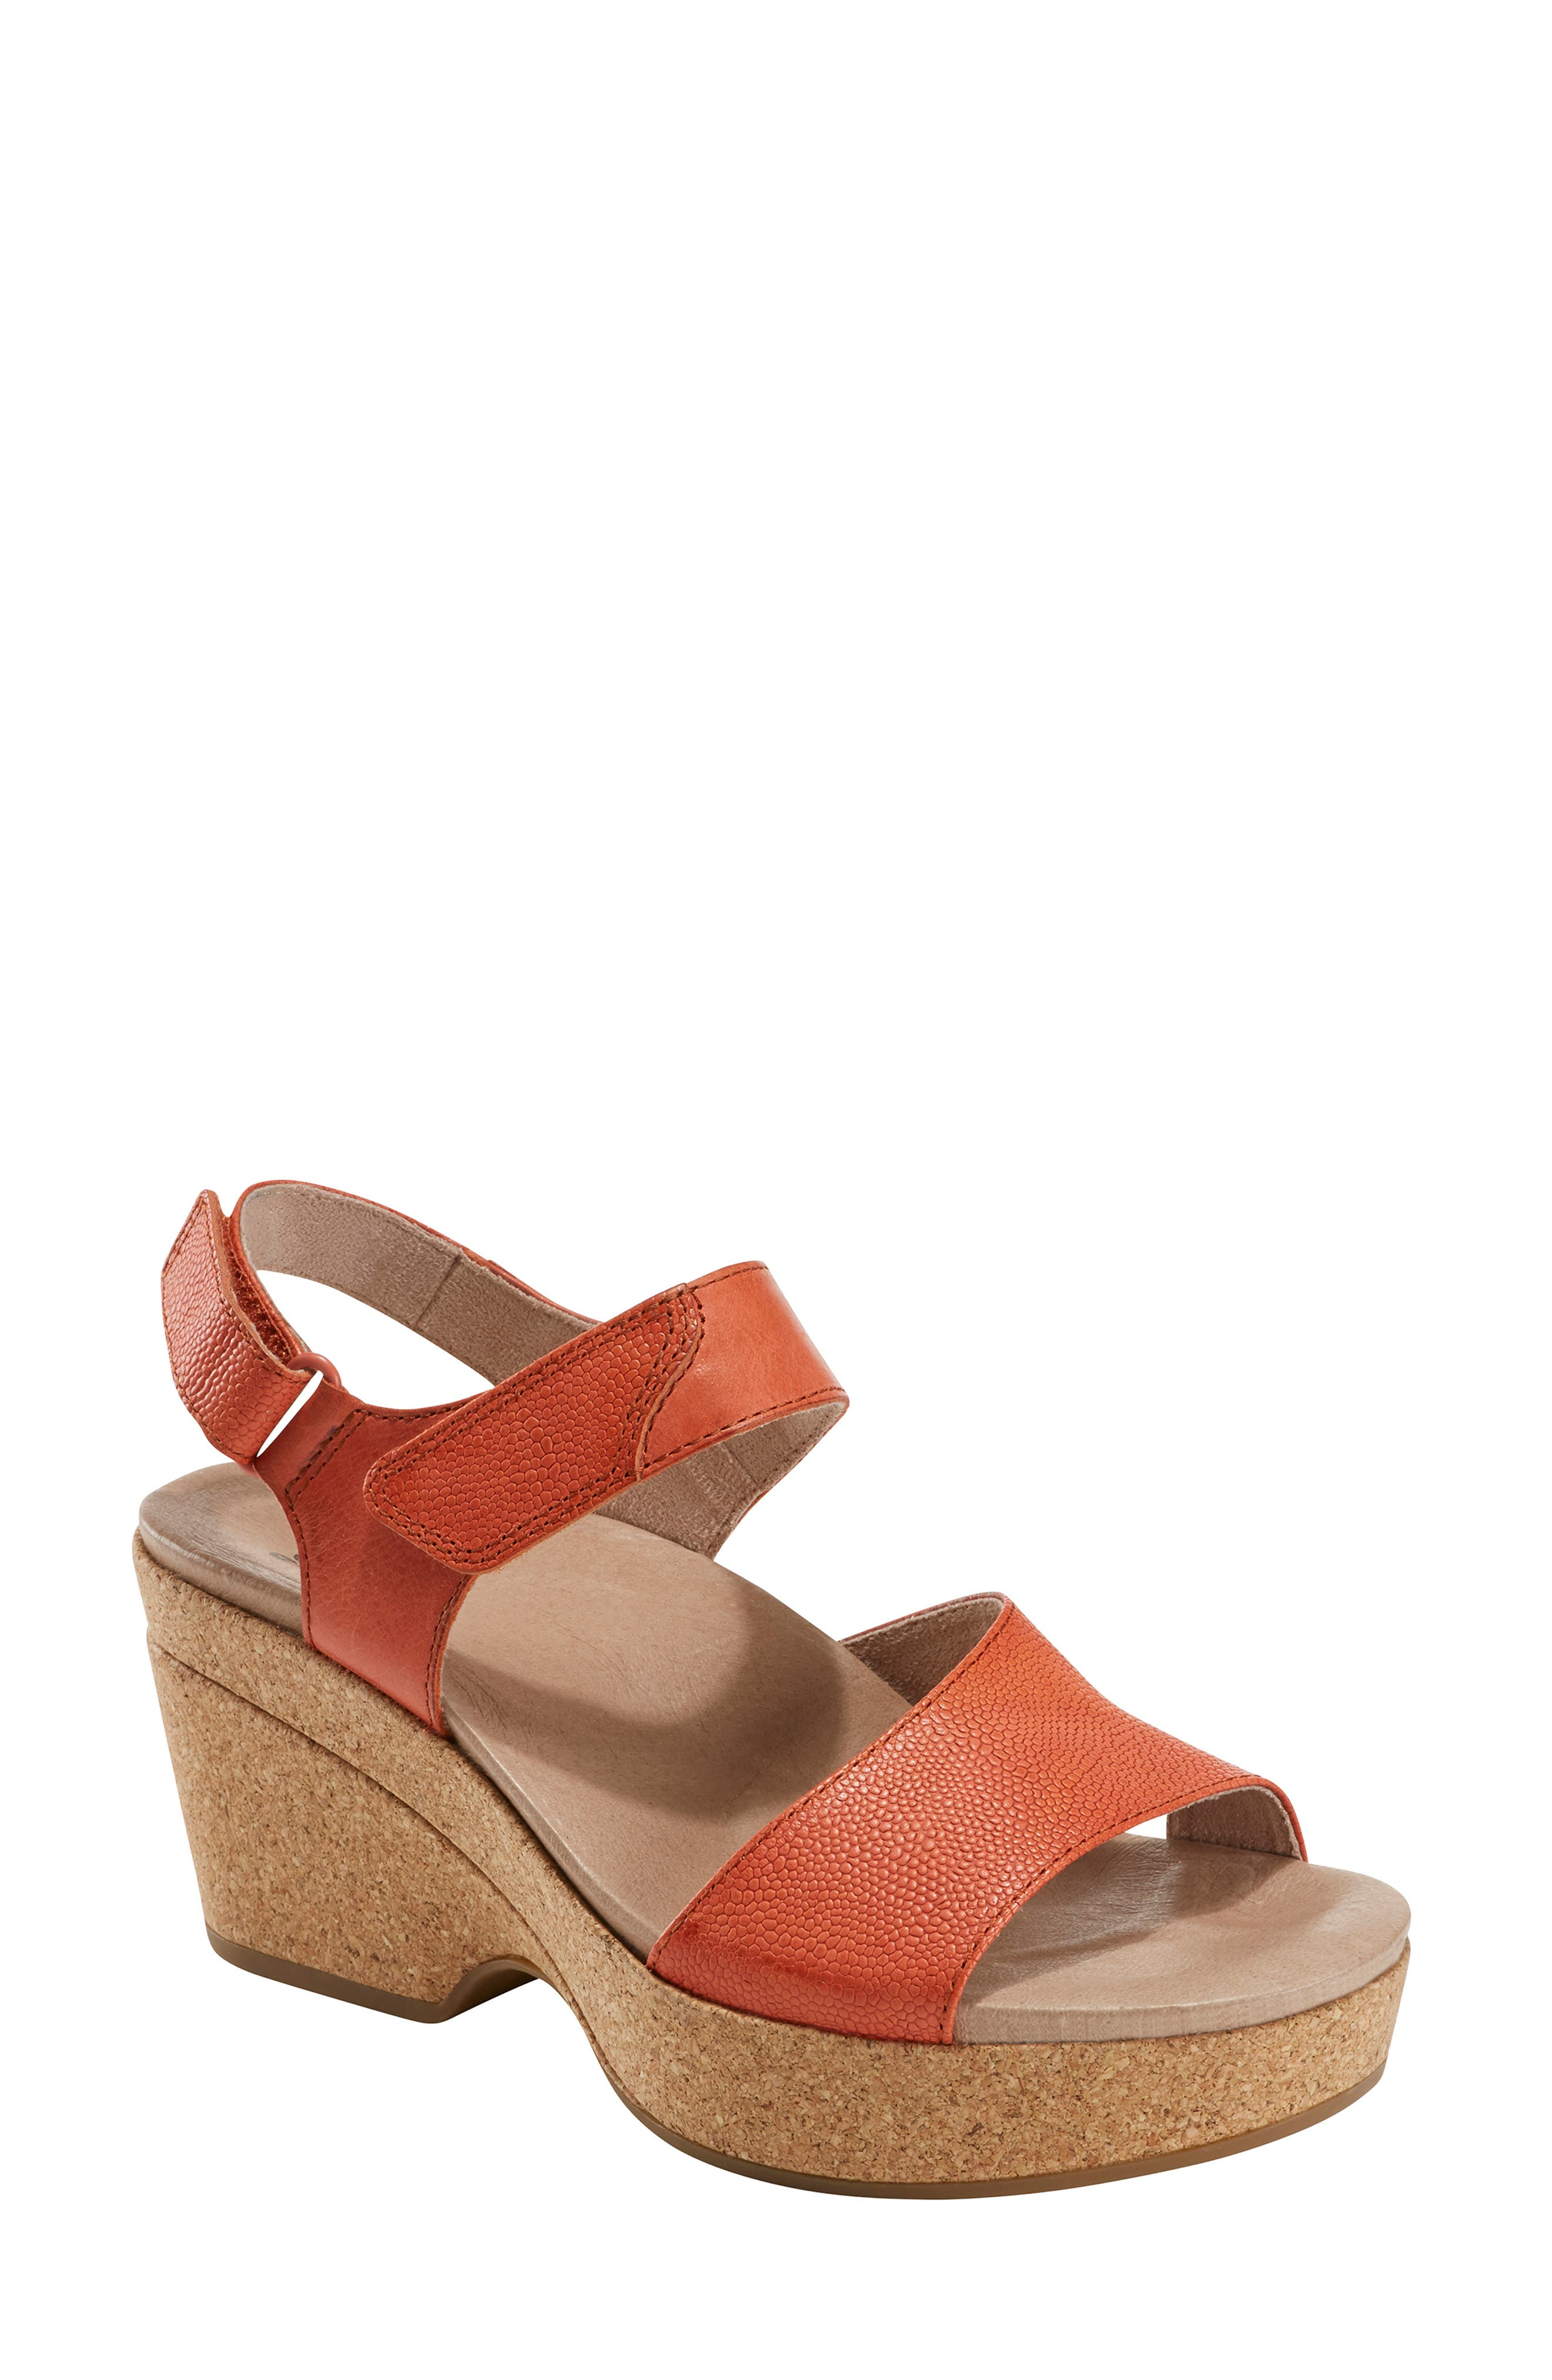 Richly grained leather straps add a dash of sophistication to a platform sandal set on a contoured, arch-supporting footbed. Style Name: Earth Kella Platform Sandal (Women). Style Number: 5782951. Available in stores.